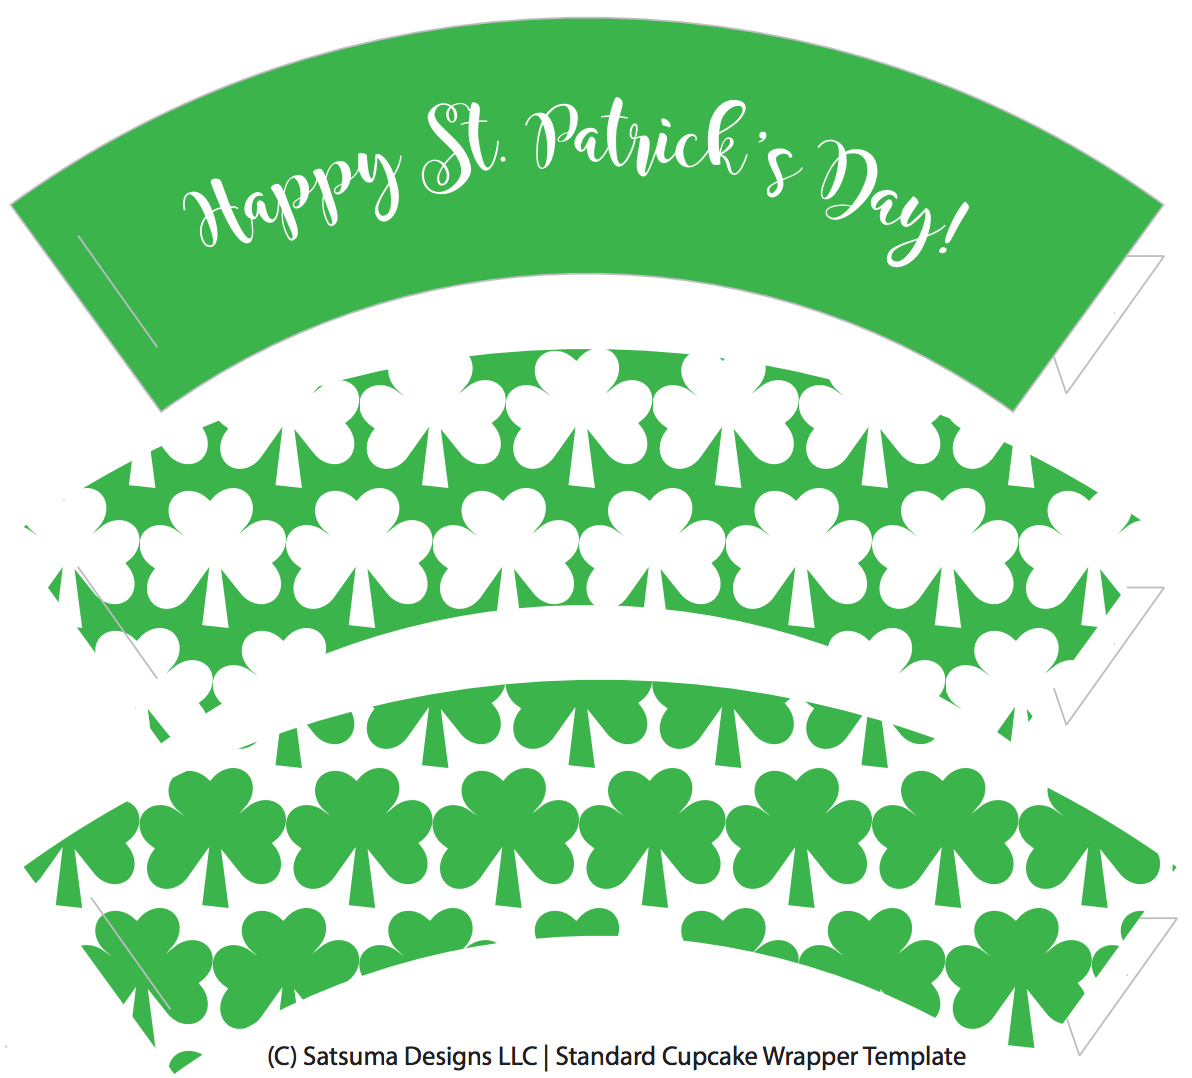 photo relating to Free Printable Cupcake Wrappers identified as St. Patricks Working day Cupcake Wrappers Satsuma Types